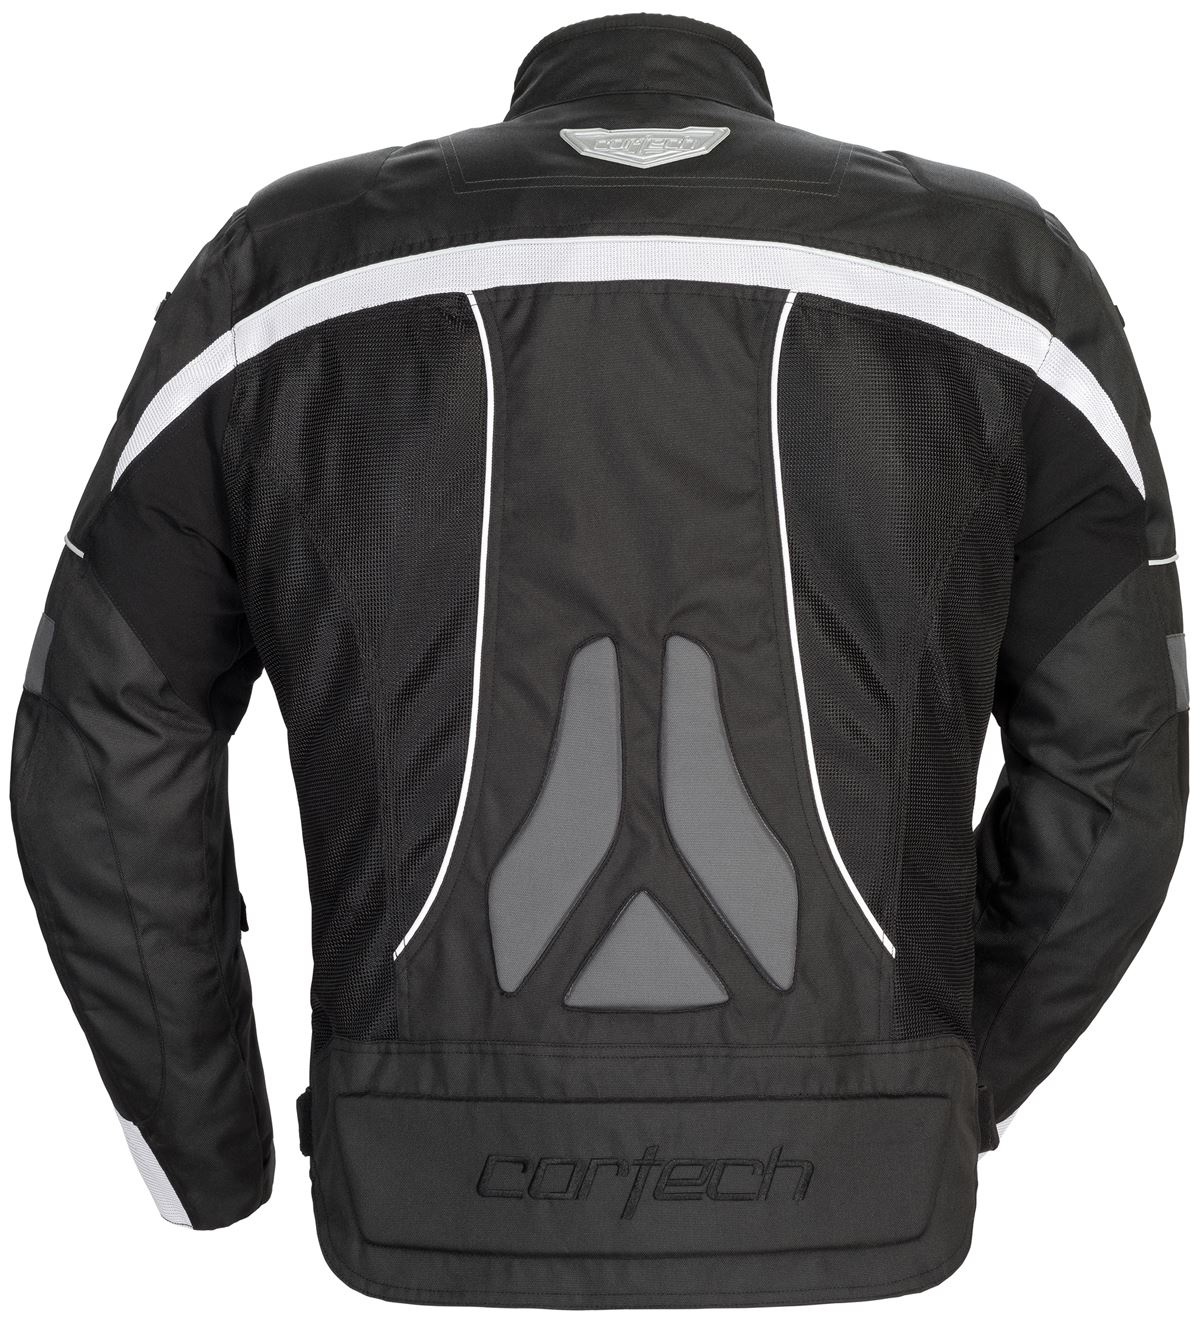 Cortech-VRX-Air-Textile-Motorcycle-Jacket-Waterproof-Mild-Hot-Weather-XS-3XL thumbnail 5